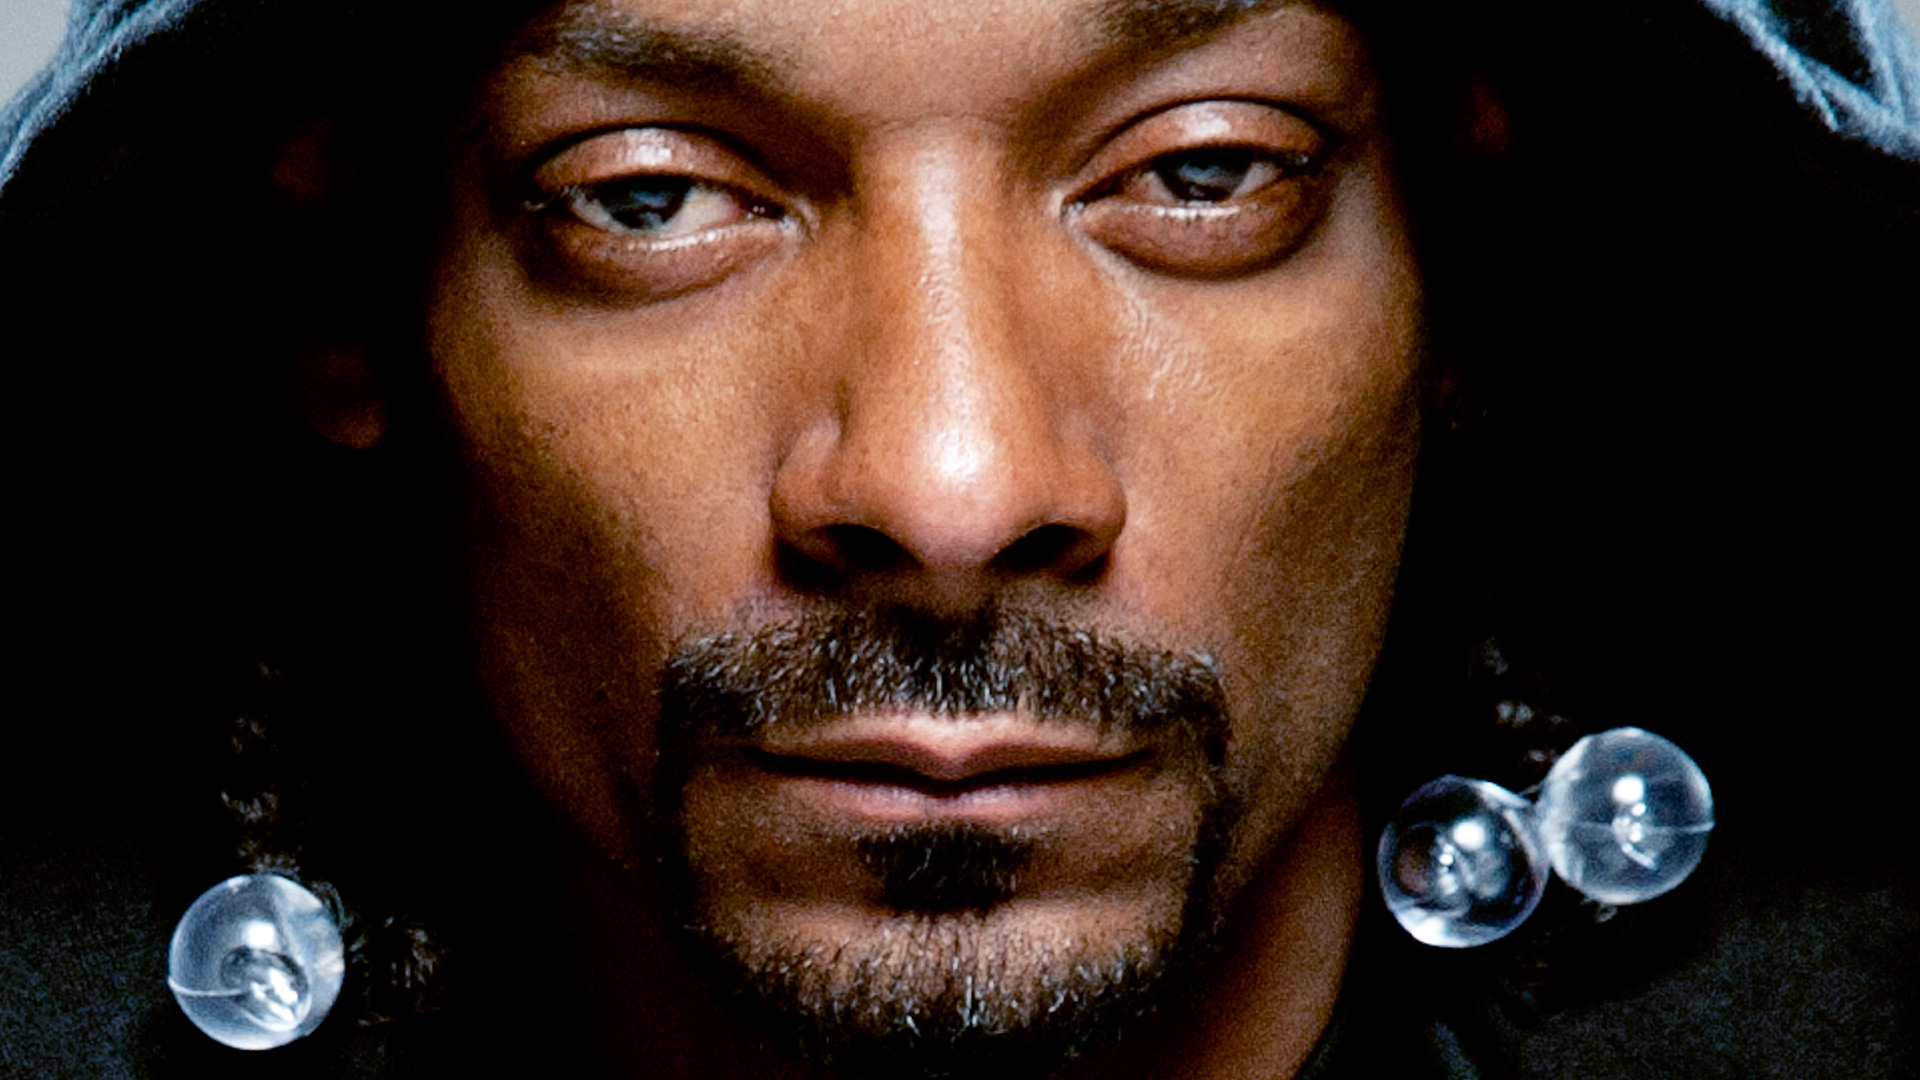 Snoop Dogg Pics, Music Collection